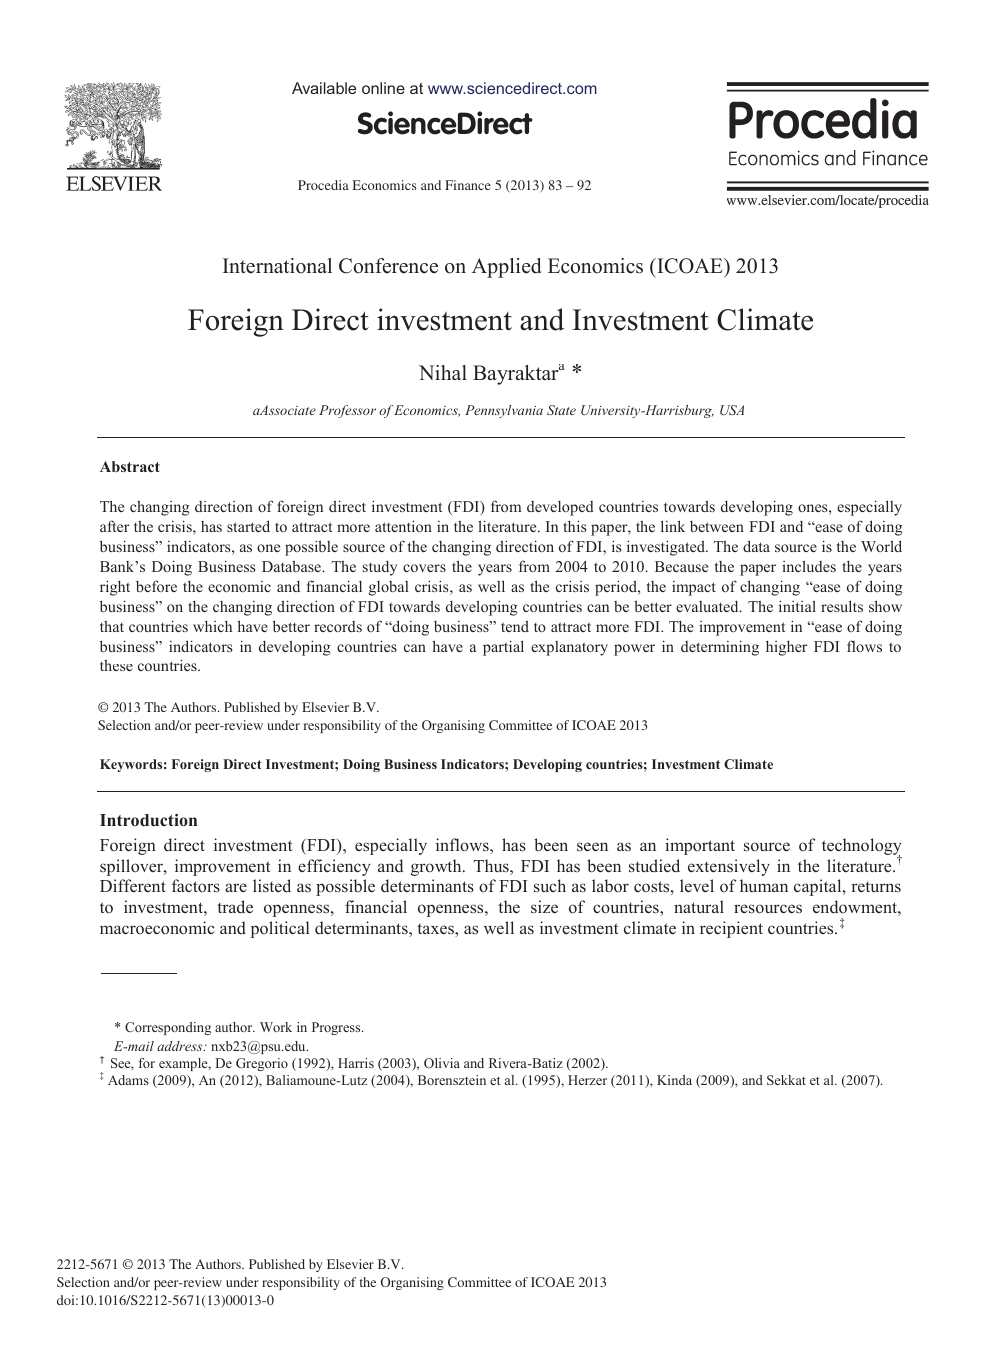 foreign direct investment research paper